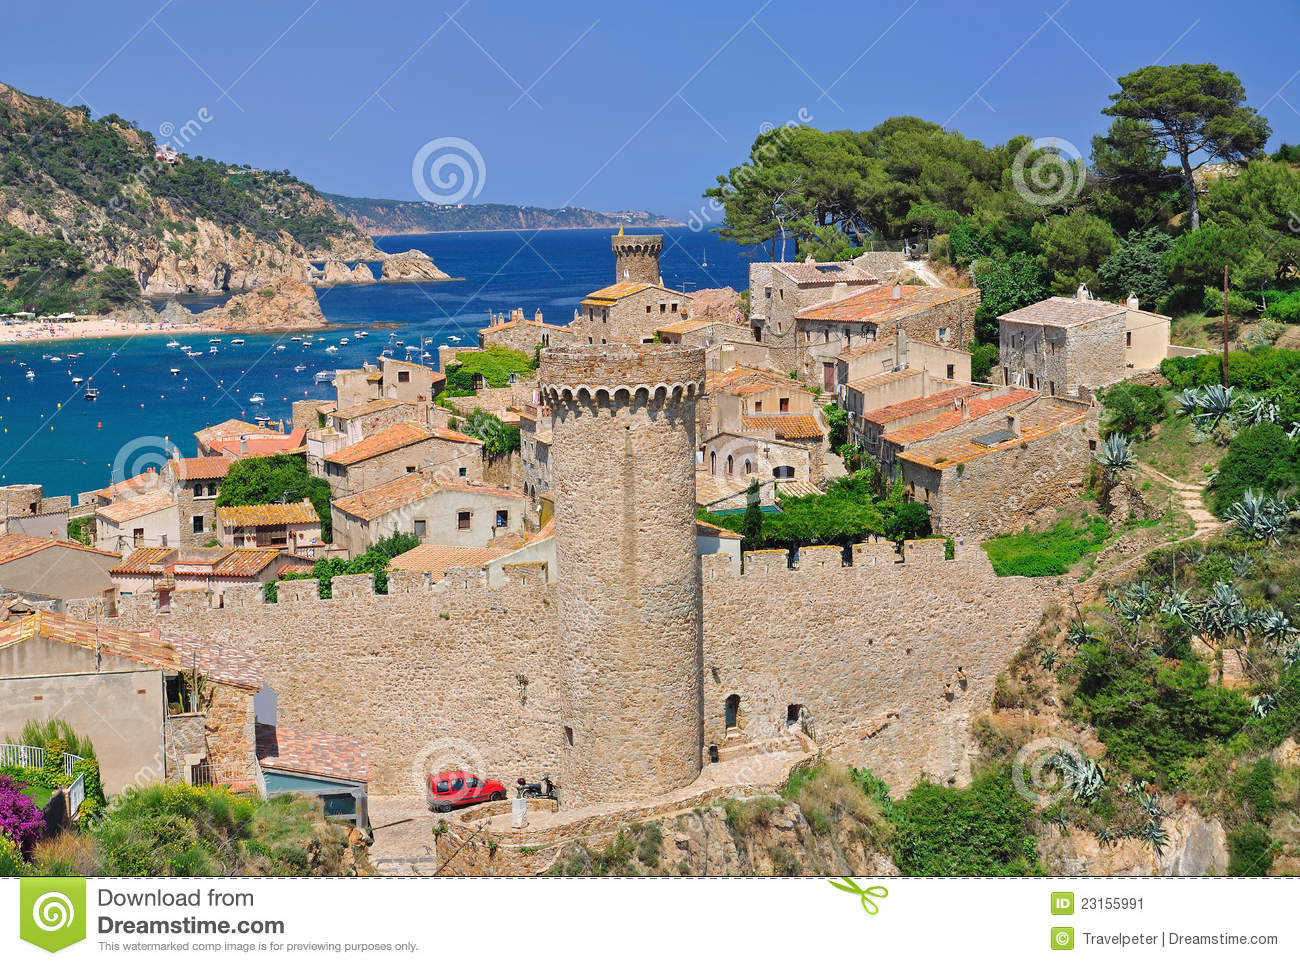 Tossa de Mar Spain  City pictures : ... well known village tossa de mar on the costa brava,catalonia,spain